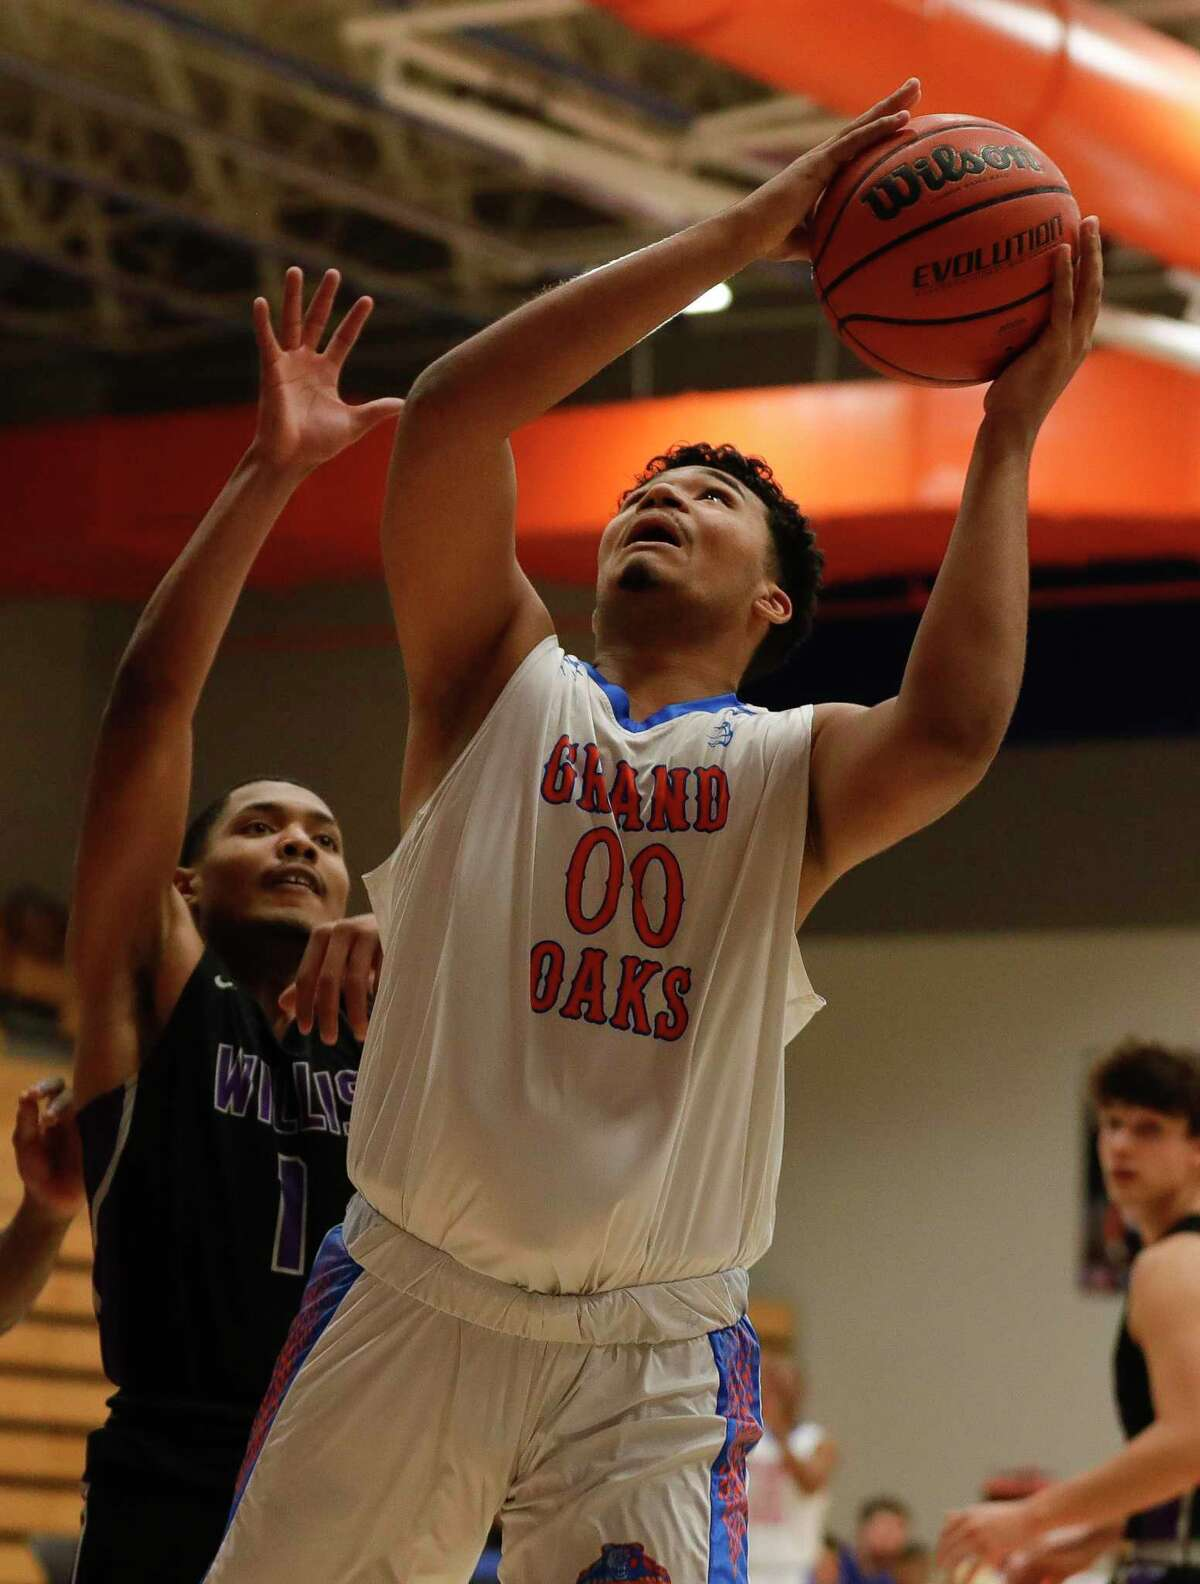 Grand Oaks center CJ Jones (00) shoots as Willis guard Charles Kibble (1) defends during the first quarter of a District 20-5A high school basketball game at Grand Oaks High School, Tuesday, Jan. 21, 2020, in Spring.